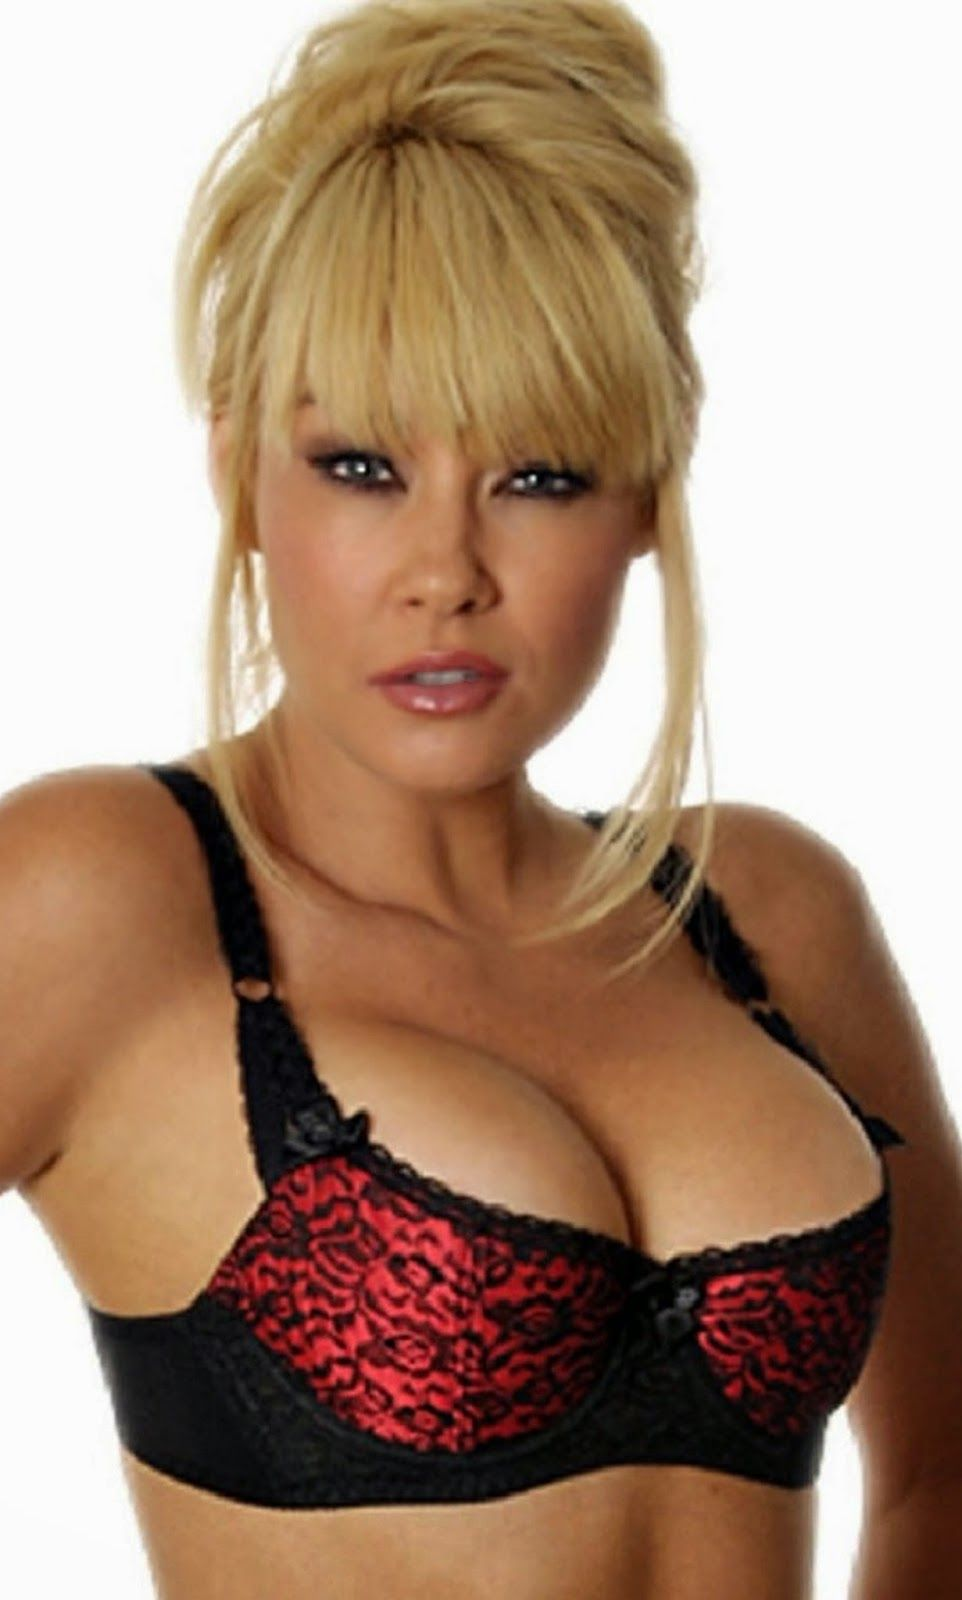 fb25c430027 shelf bra 38dd Empire Intimates Satin w Lace Shelf Bra Open Push-up Fits  Cups D and DD $39.95